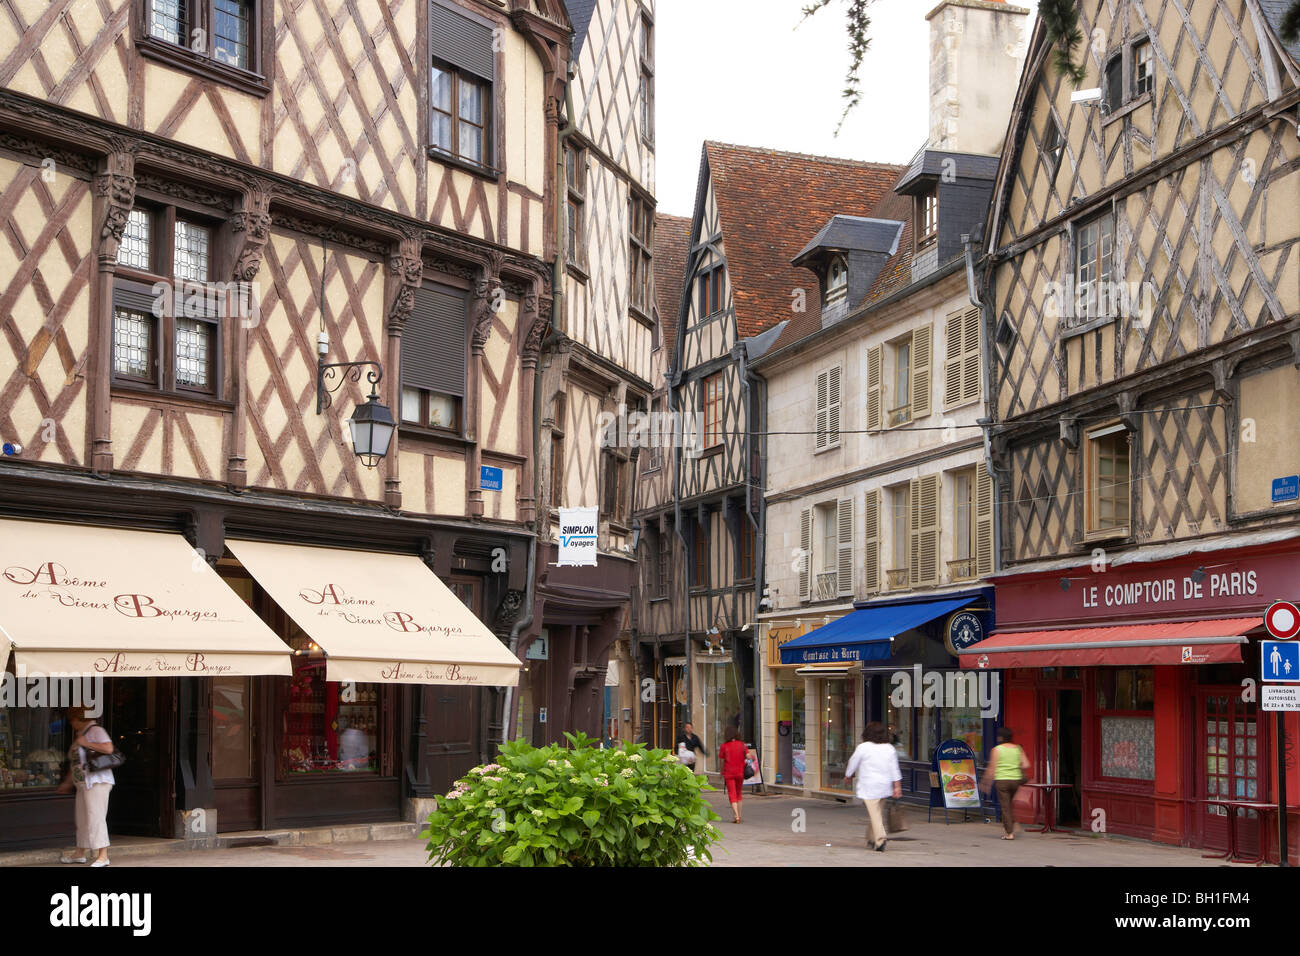 Old city of Bourges with Place Gordaine, The Way of St. James, Chemins de Saint Jacques, Via Lemovicensis, Bourges, - Stock Image